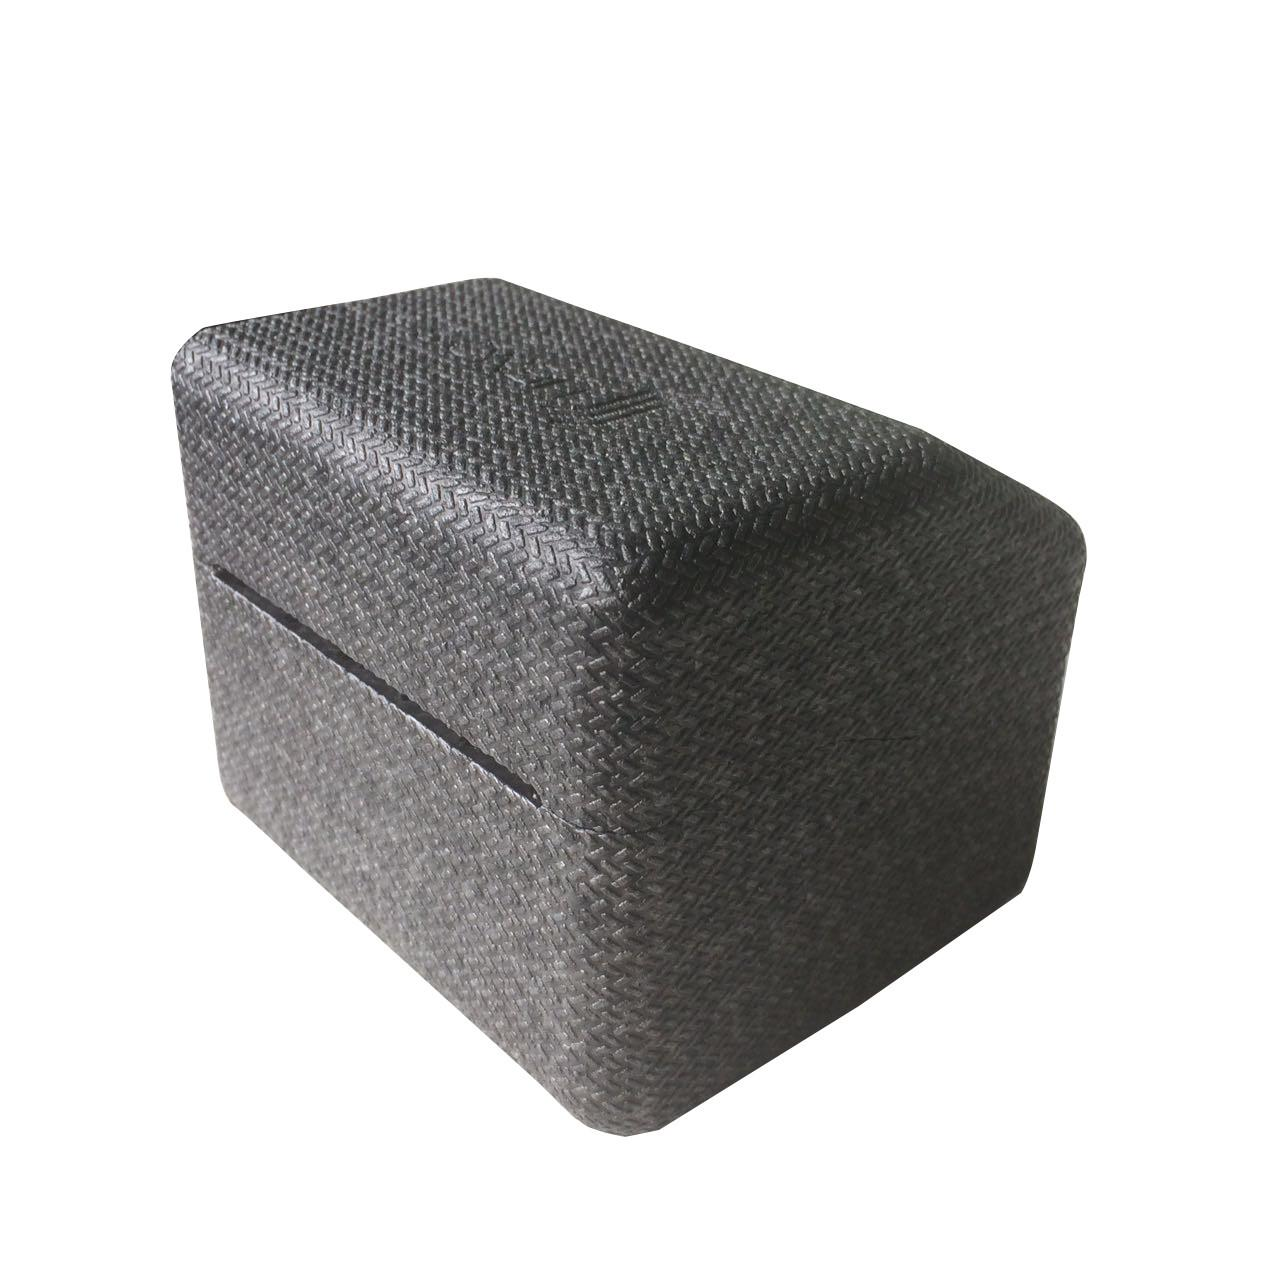 textured premium EPP cushion case for watch from HOMI EPP factory